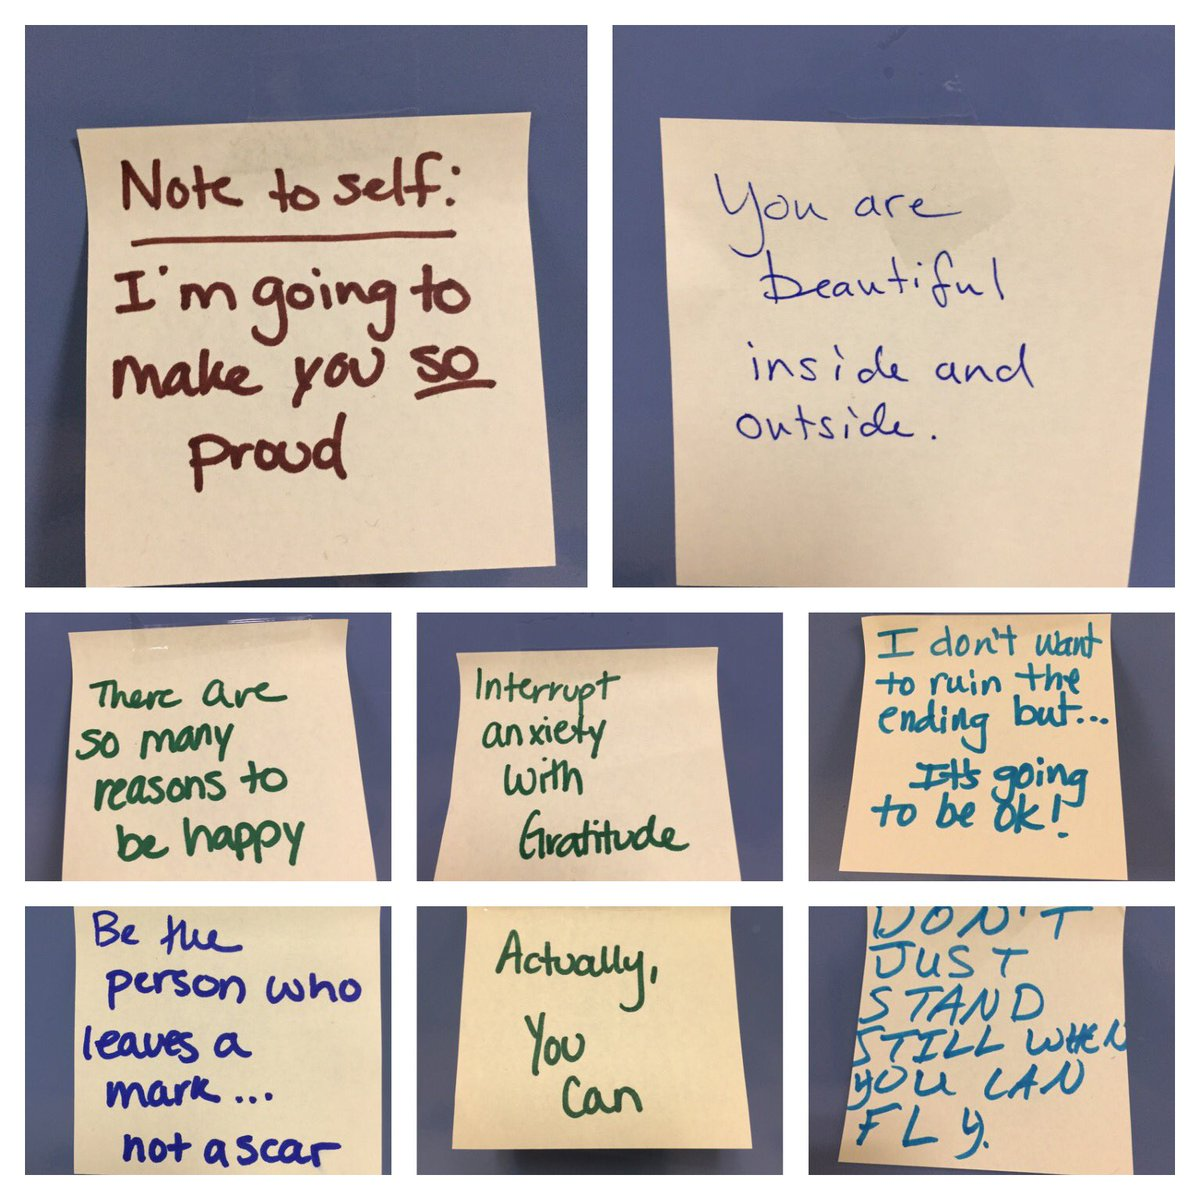 More of our positivity notes from today. #OPUnited @OakParkHS https://t.co/4HGPiQ4DeX